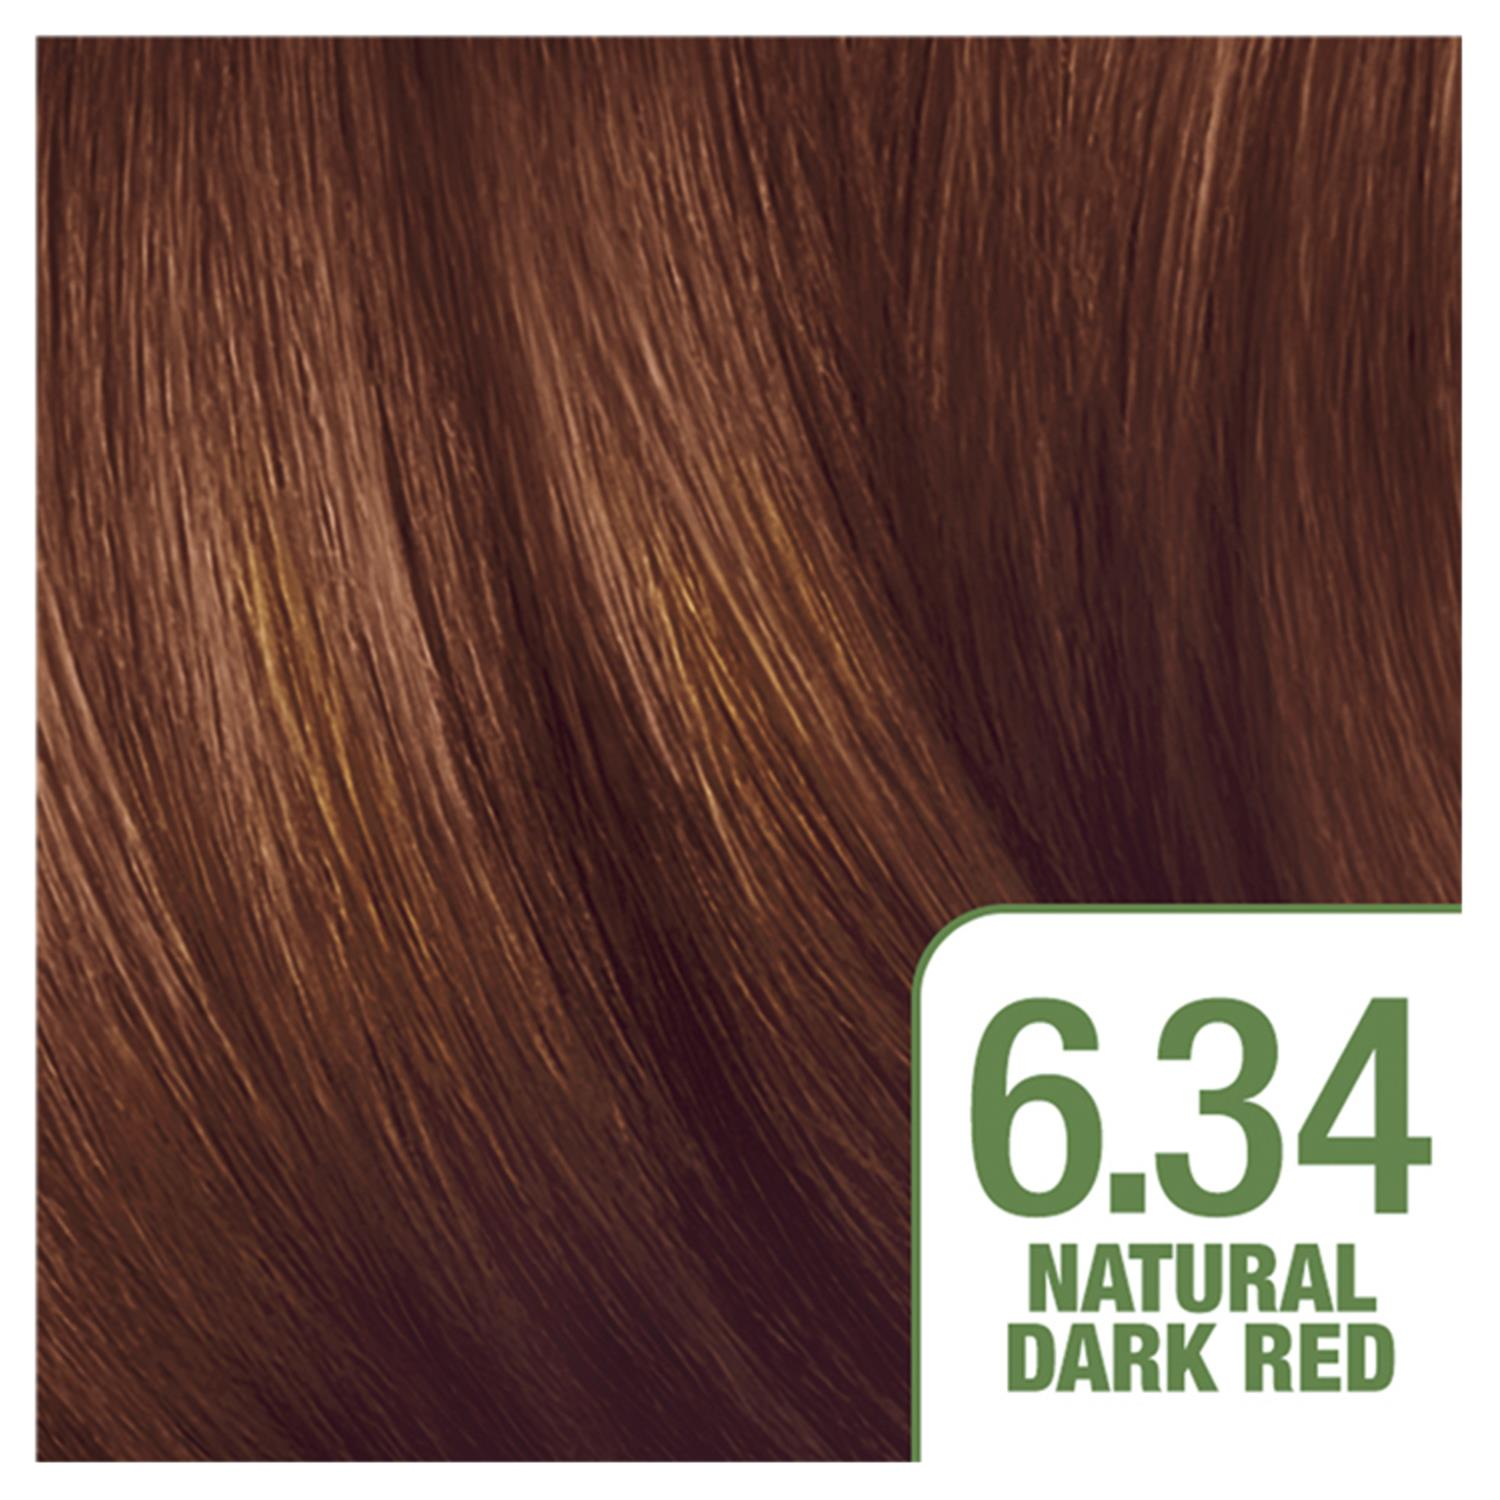 thumbnail 195 - 3 Pack Garnier Nutrisse Permanent Hair Dye With Different Shades